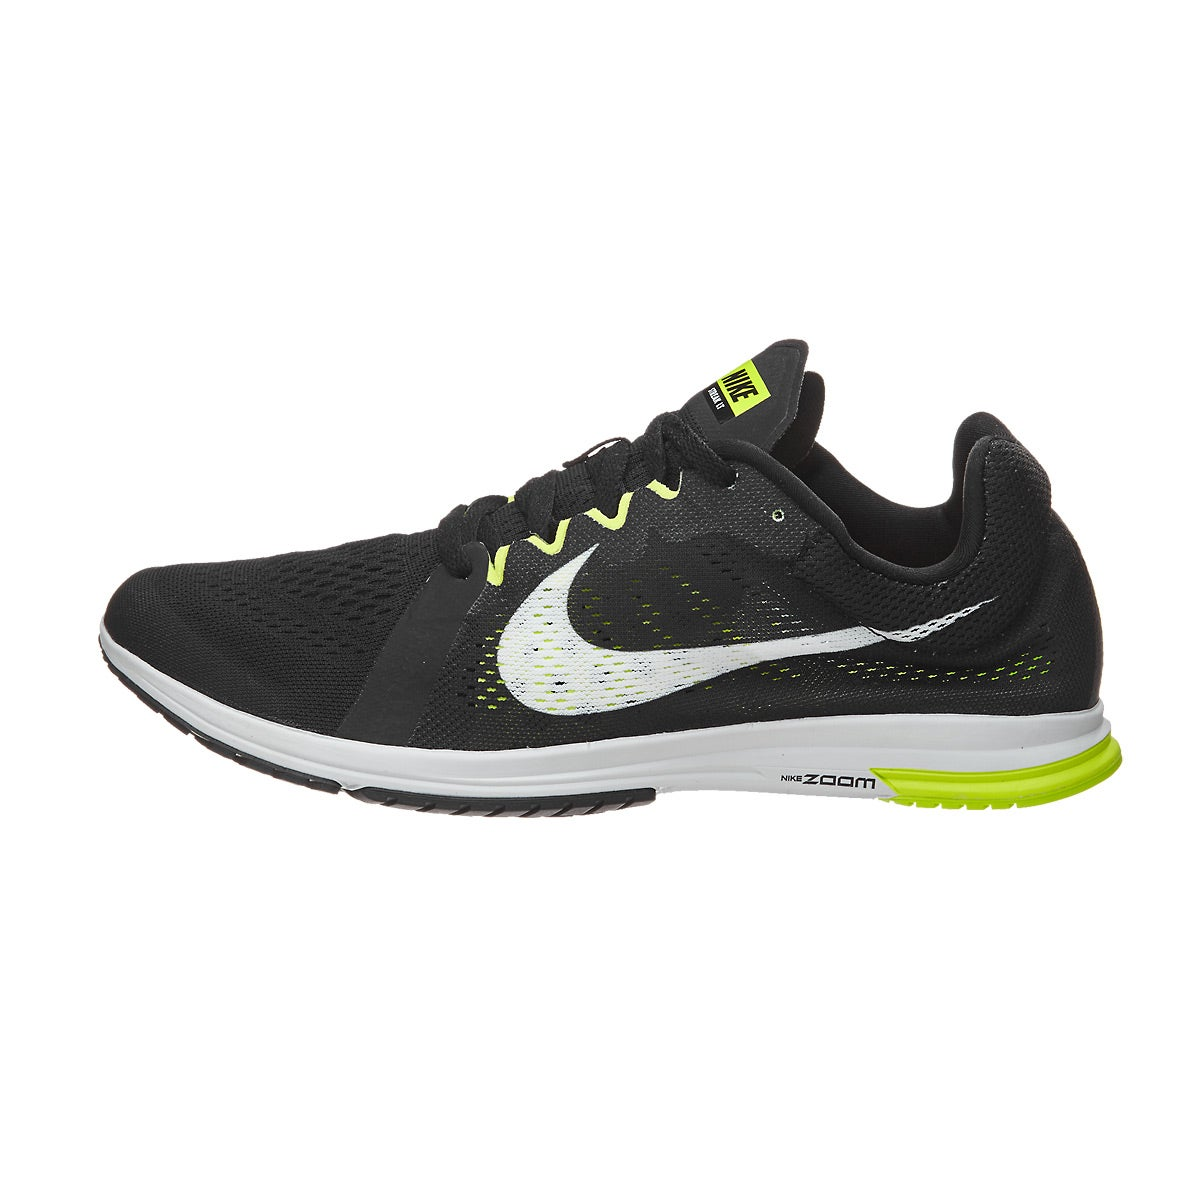 Nike Zoom Streak LT 3 Unisex Shoes Black/White/Volt 360 ...